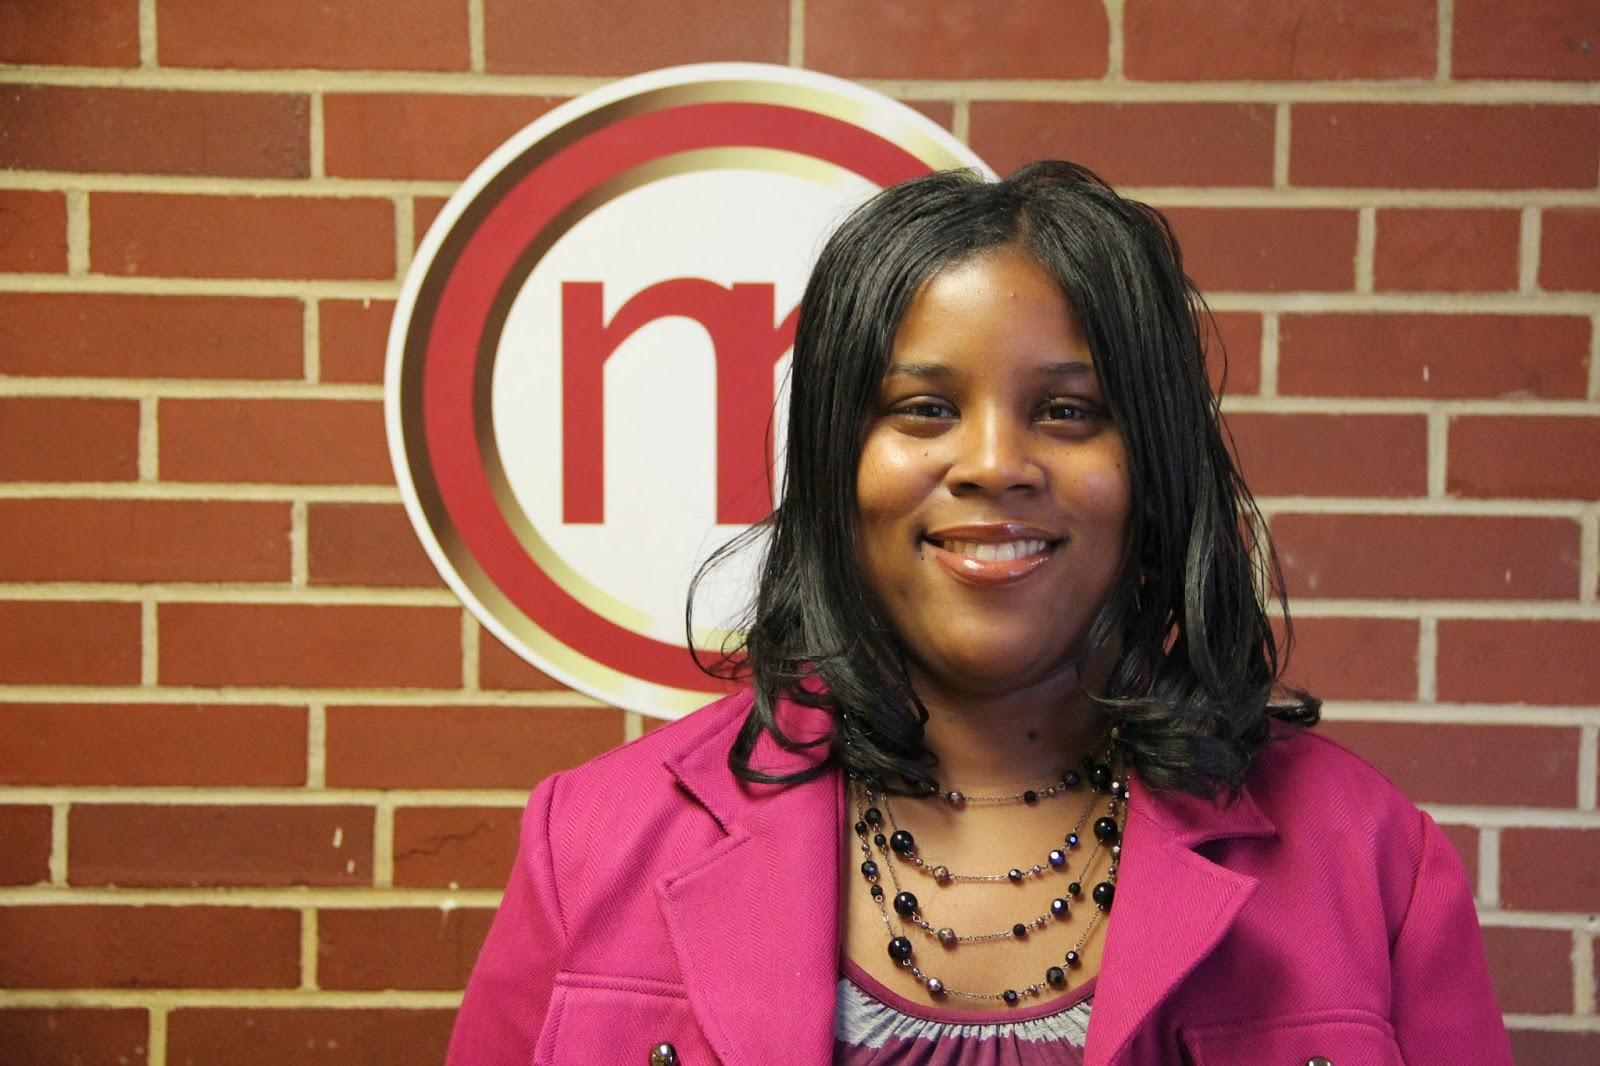 HOPKINS NAMED NEW PRINCIPAL OF HUBBARD ELEMENTARY SCHOOL